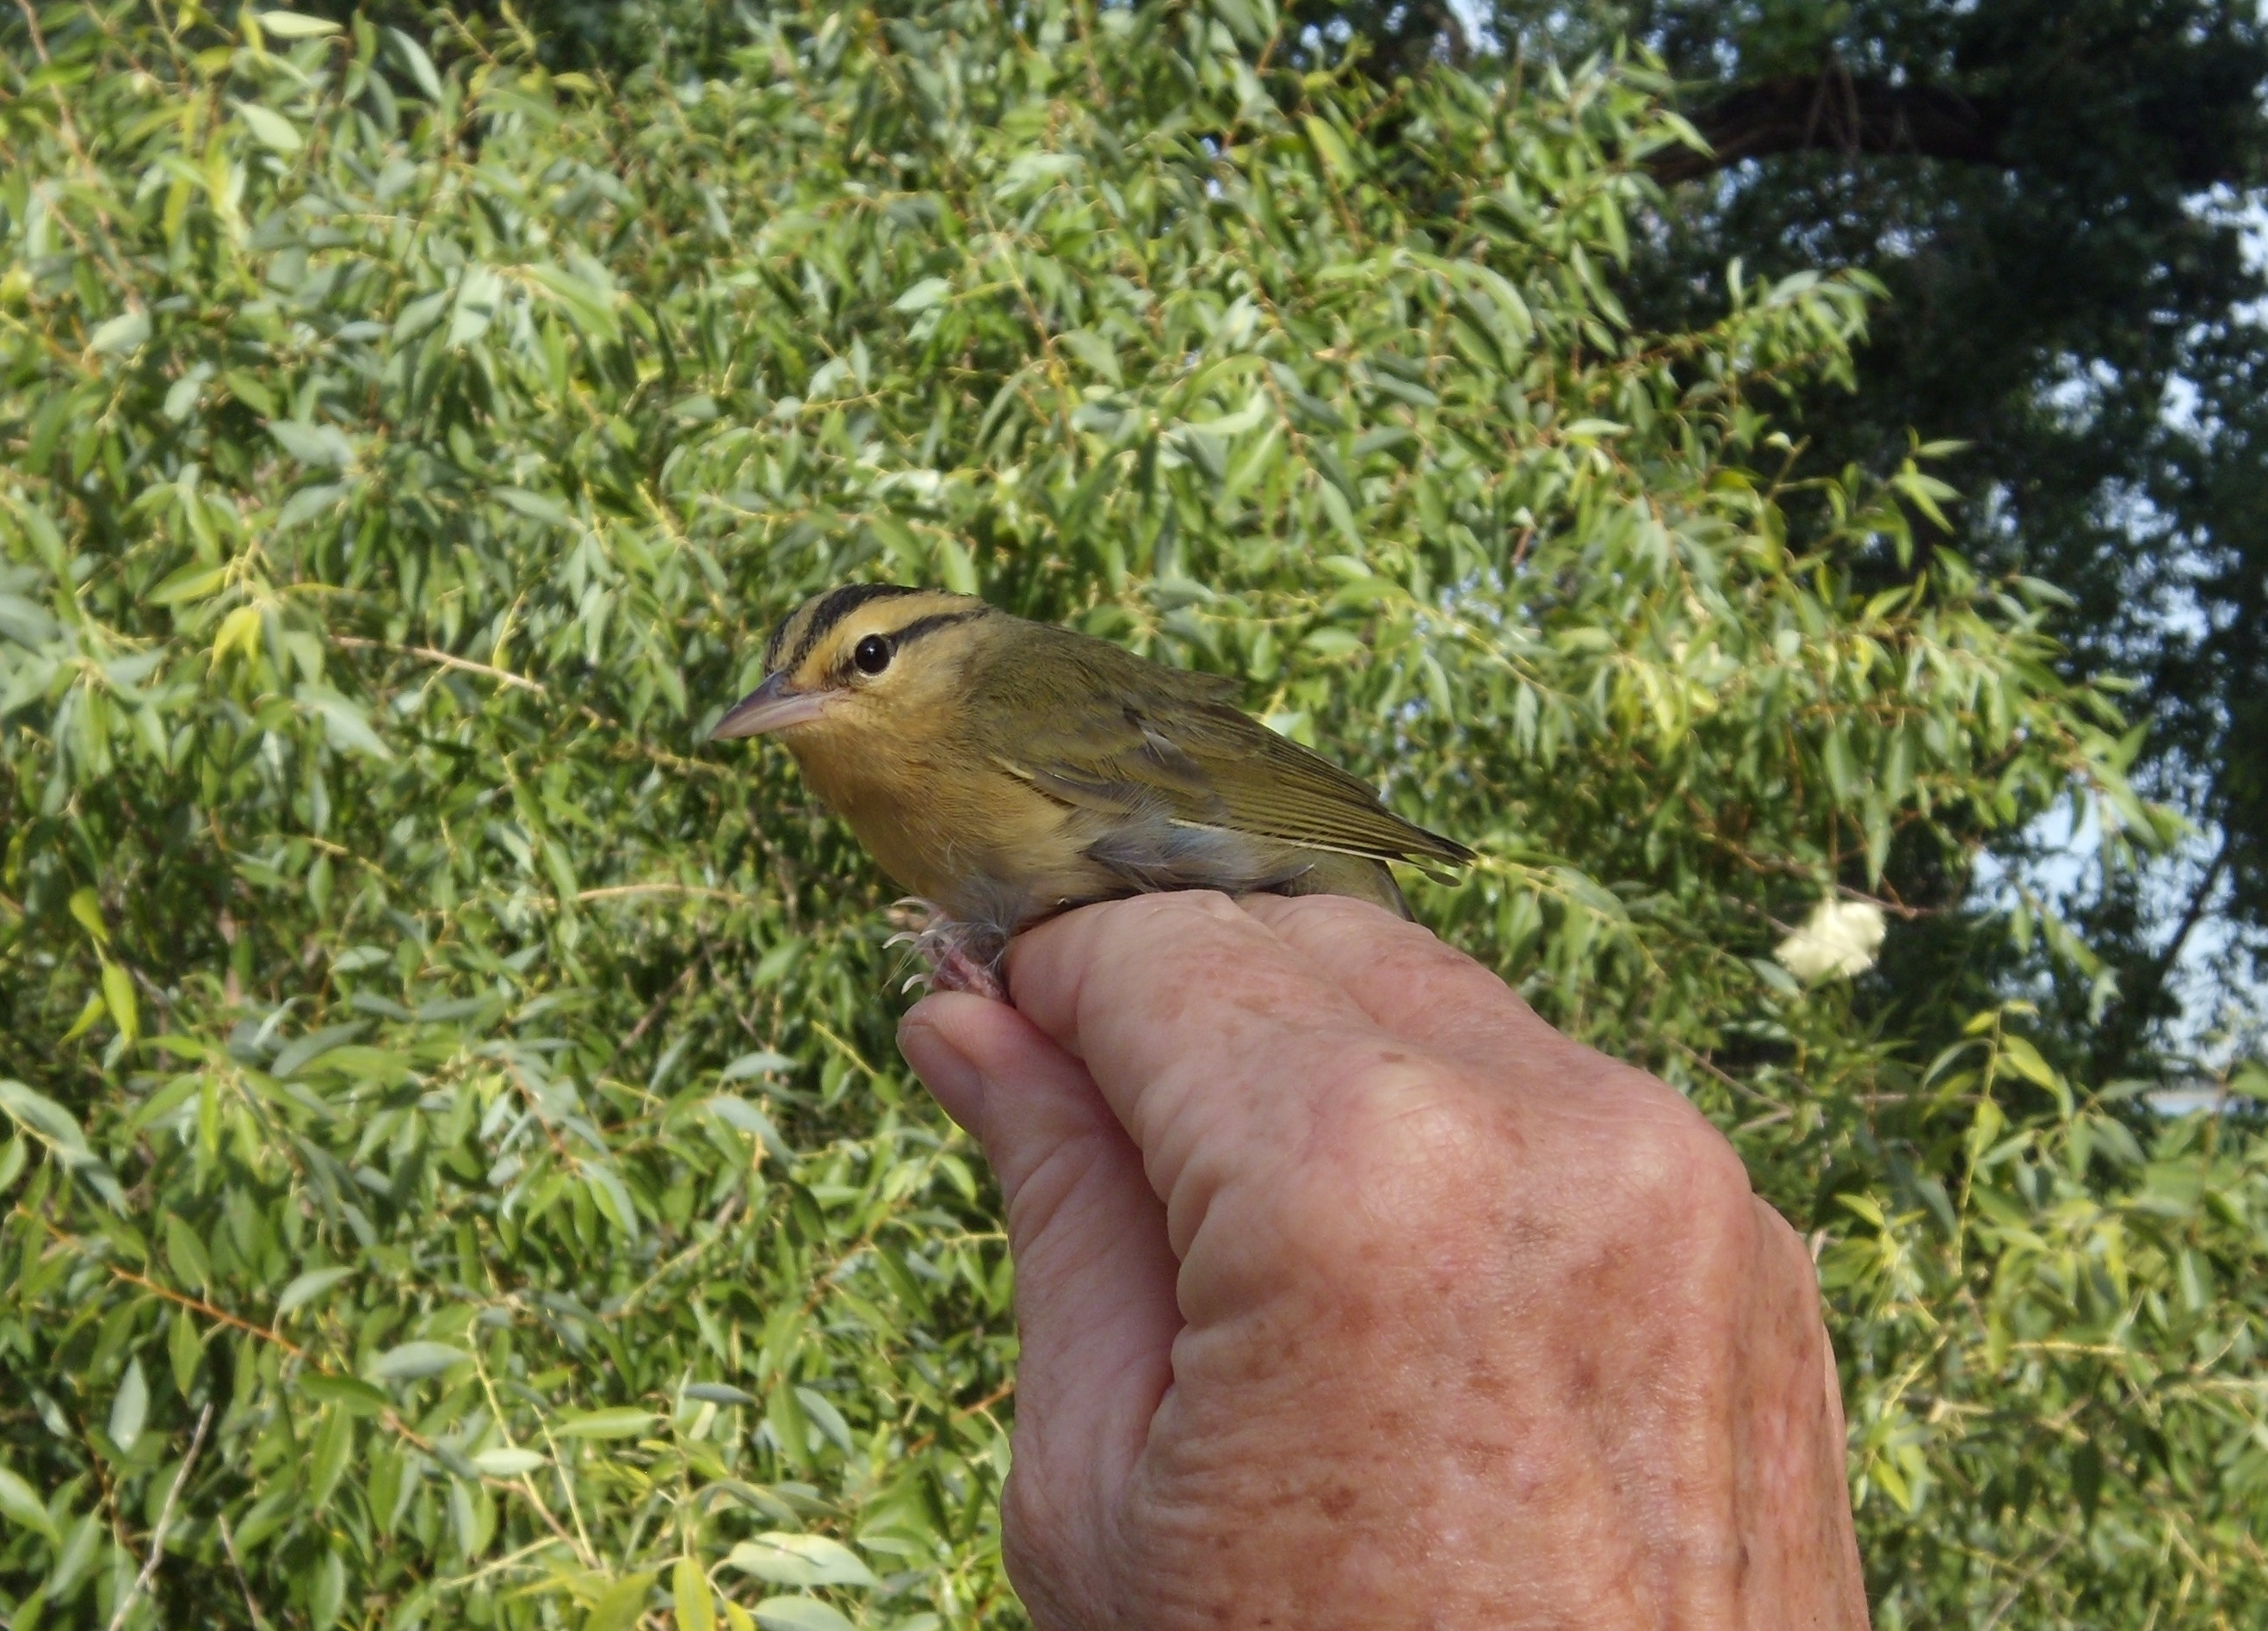 Worm-eating Warbler photo by Bird Conservancy of the Rockies